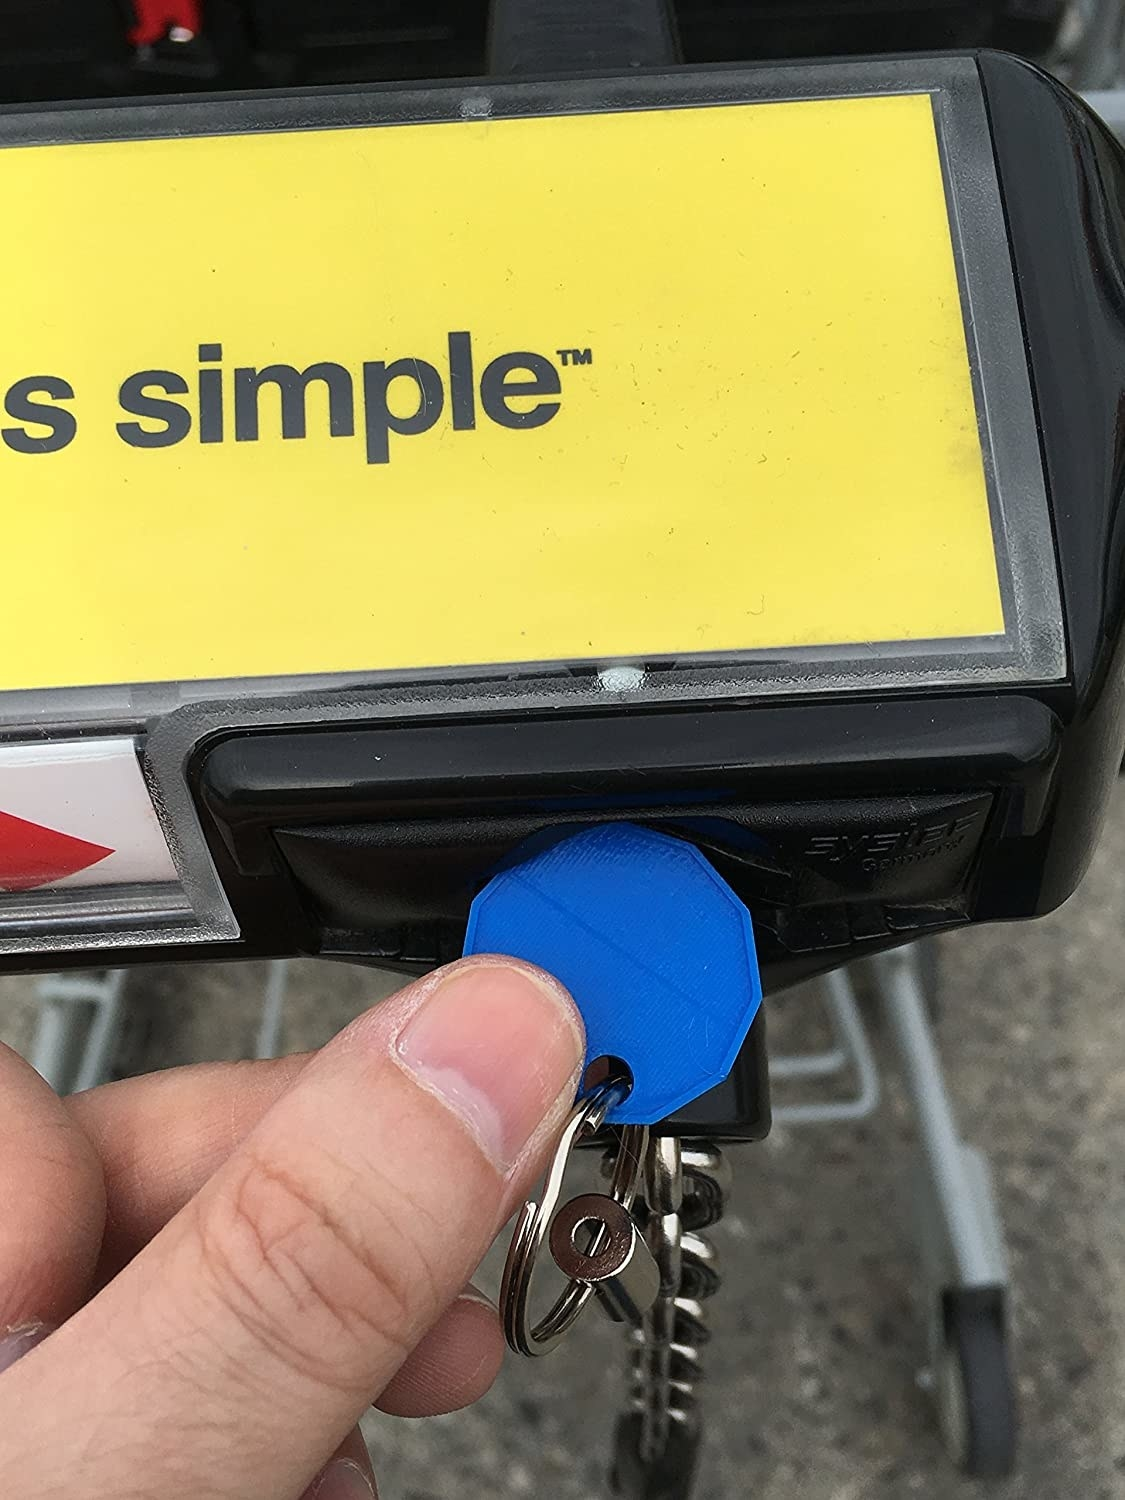 A person putting the coin into a grocery cart